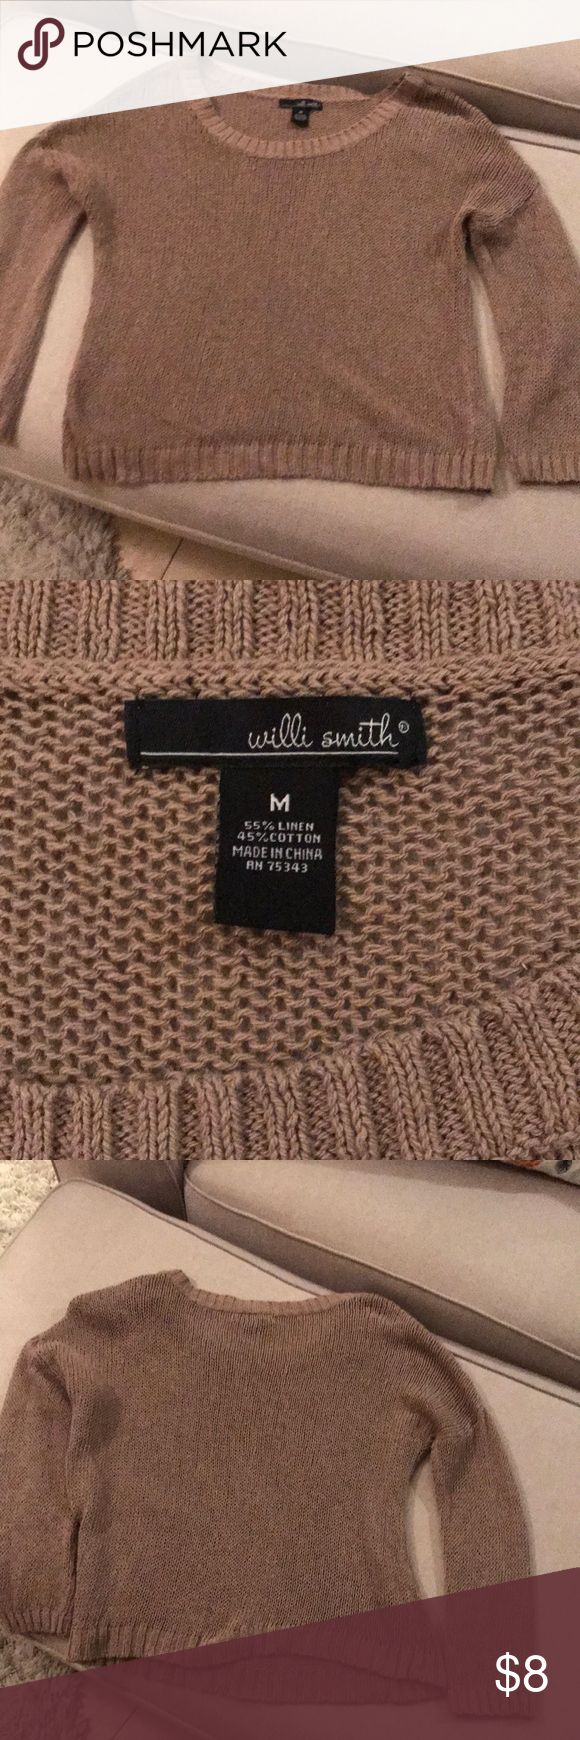 Women's Short Sweater Great for the new trend with a camisole underneath! Dark khaki, open knit sweater- looks great with dress leggings and boots! Willi Smith Sweaters